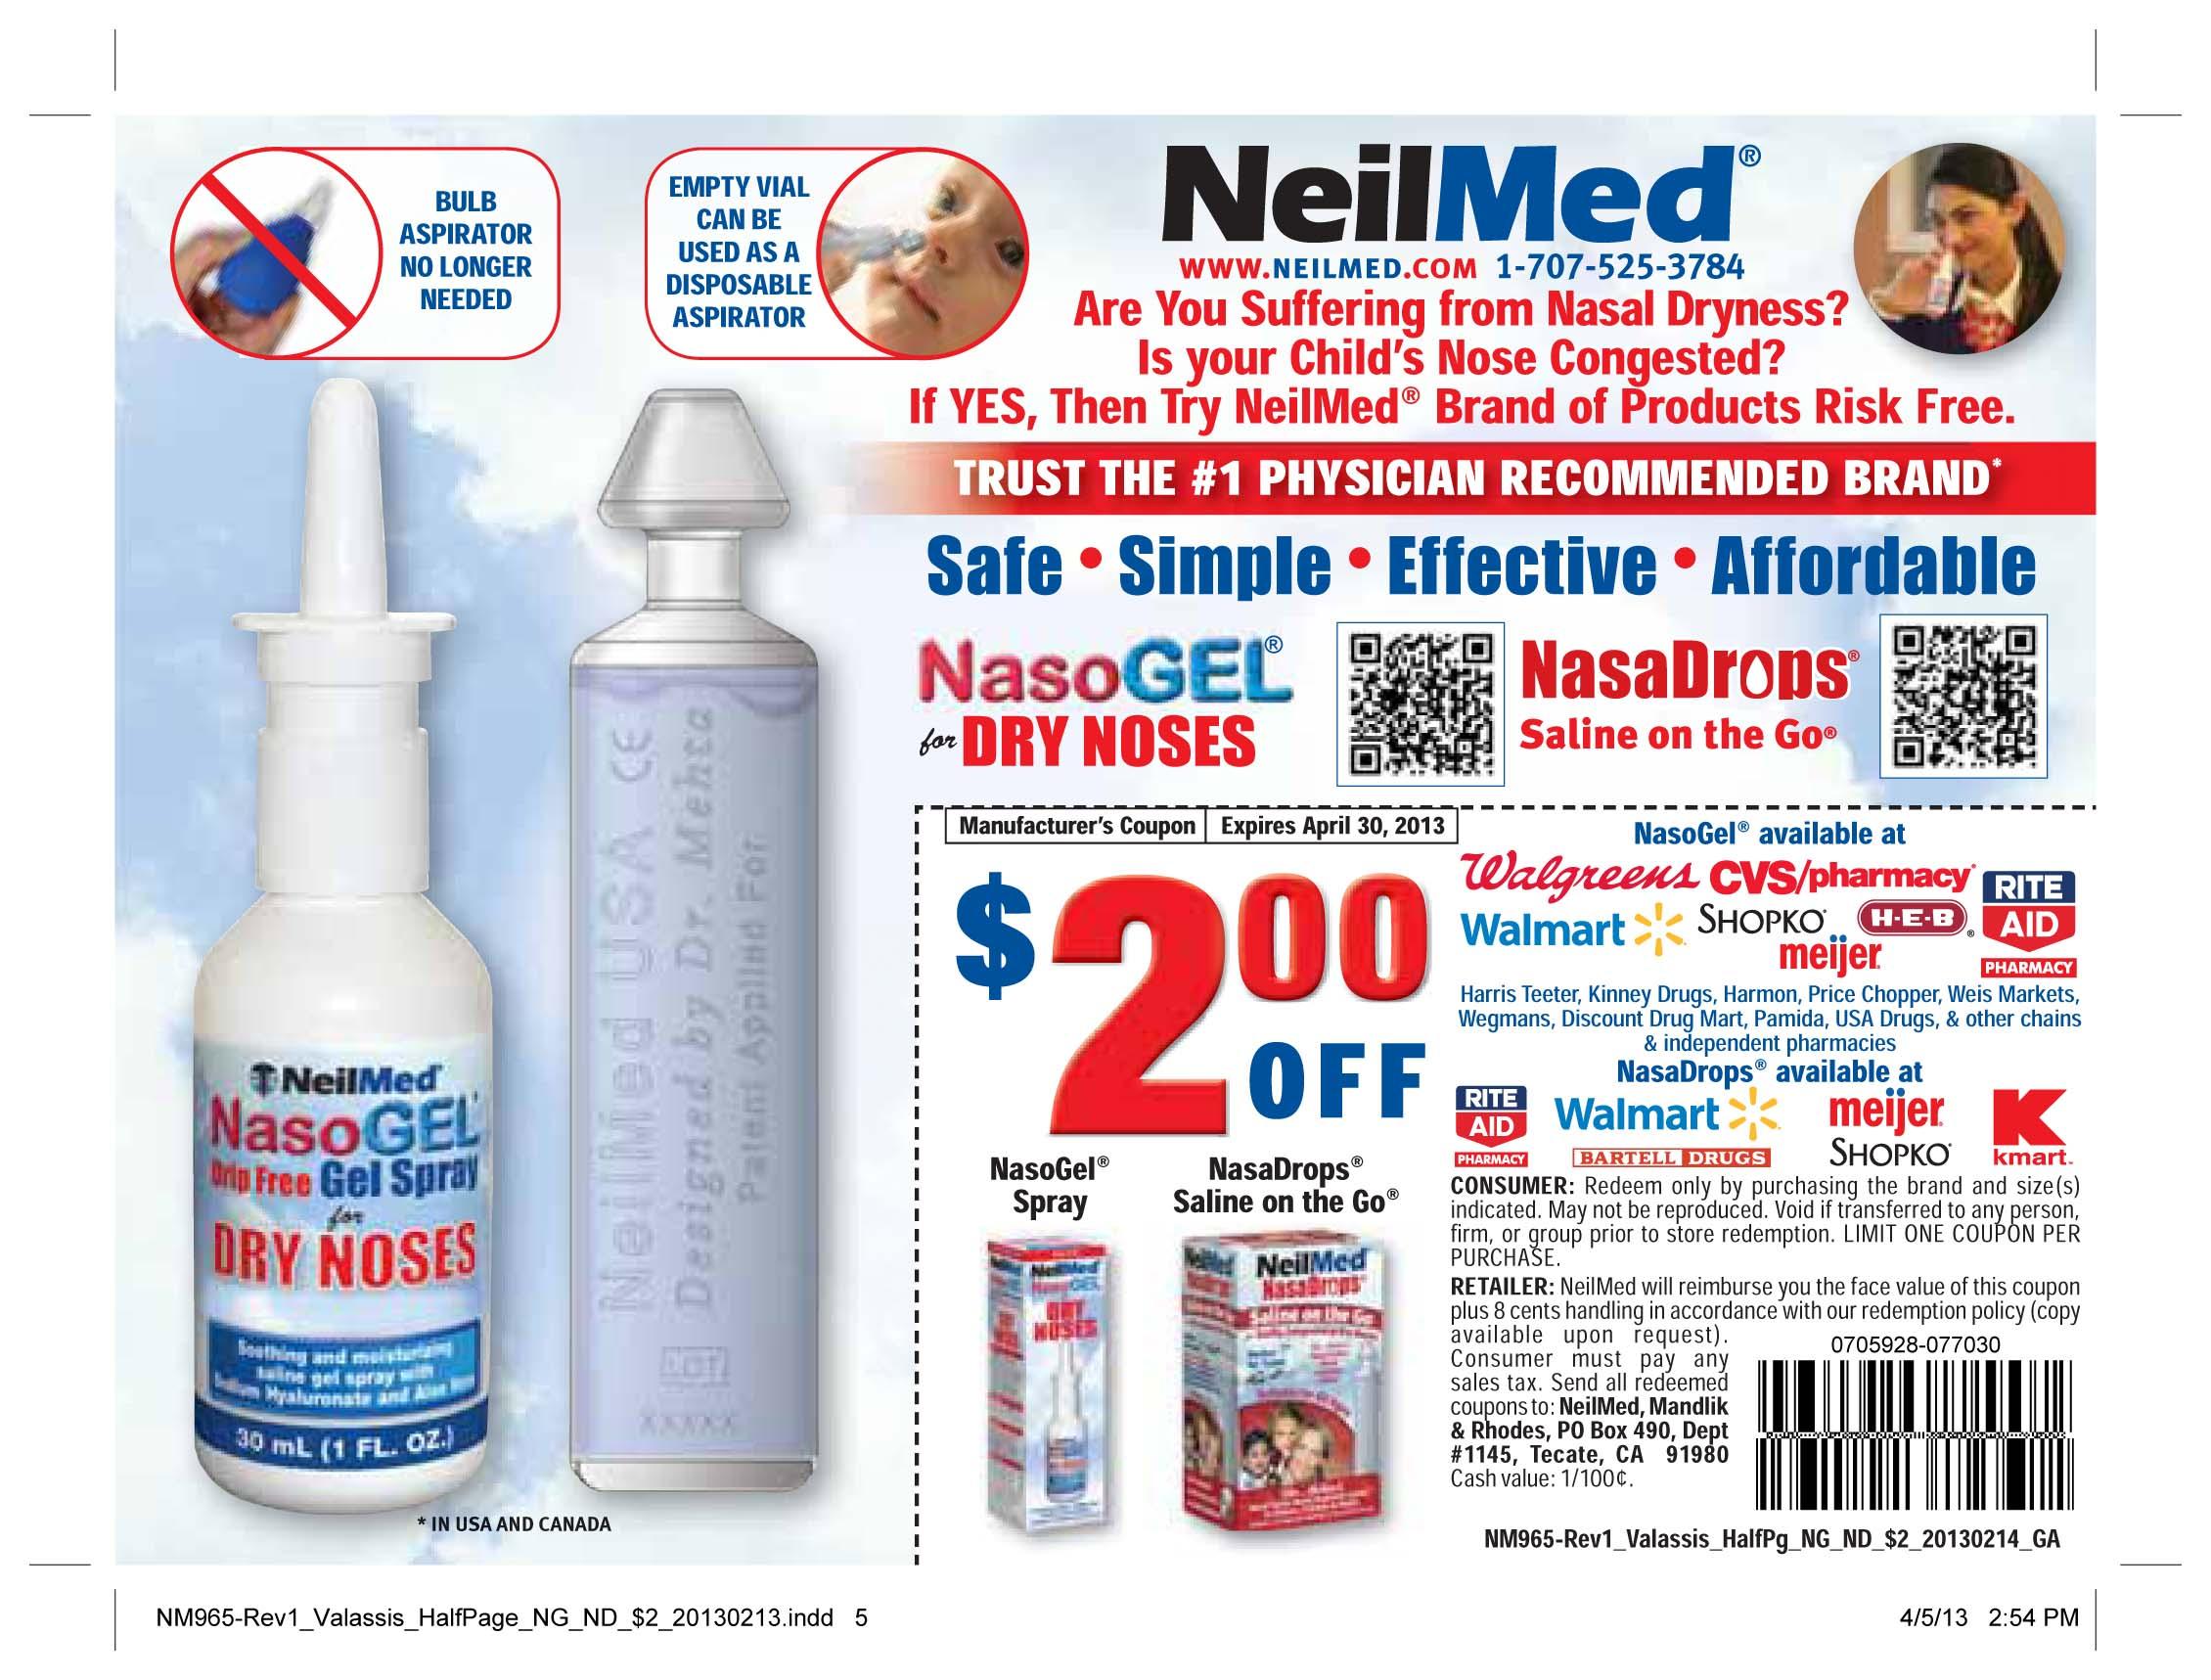 image relating to Neilmed $2 Printable Coupons titled Neil Med Coupon Print Coupon King